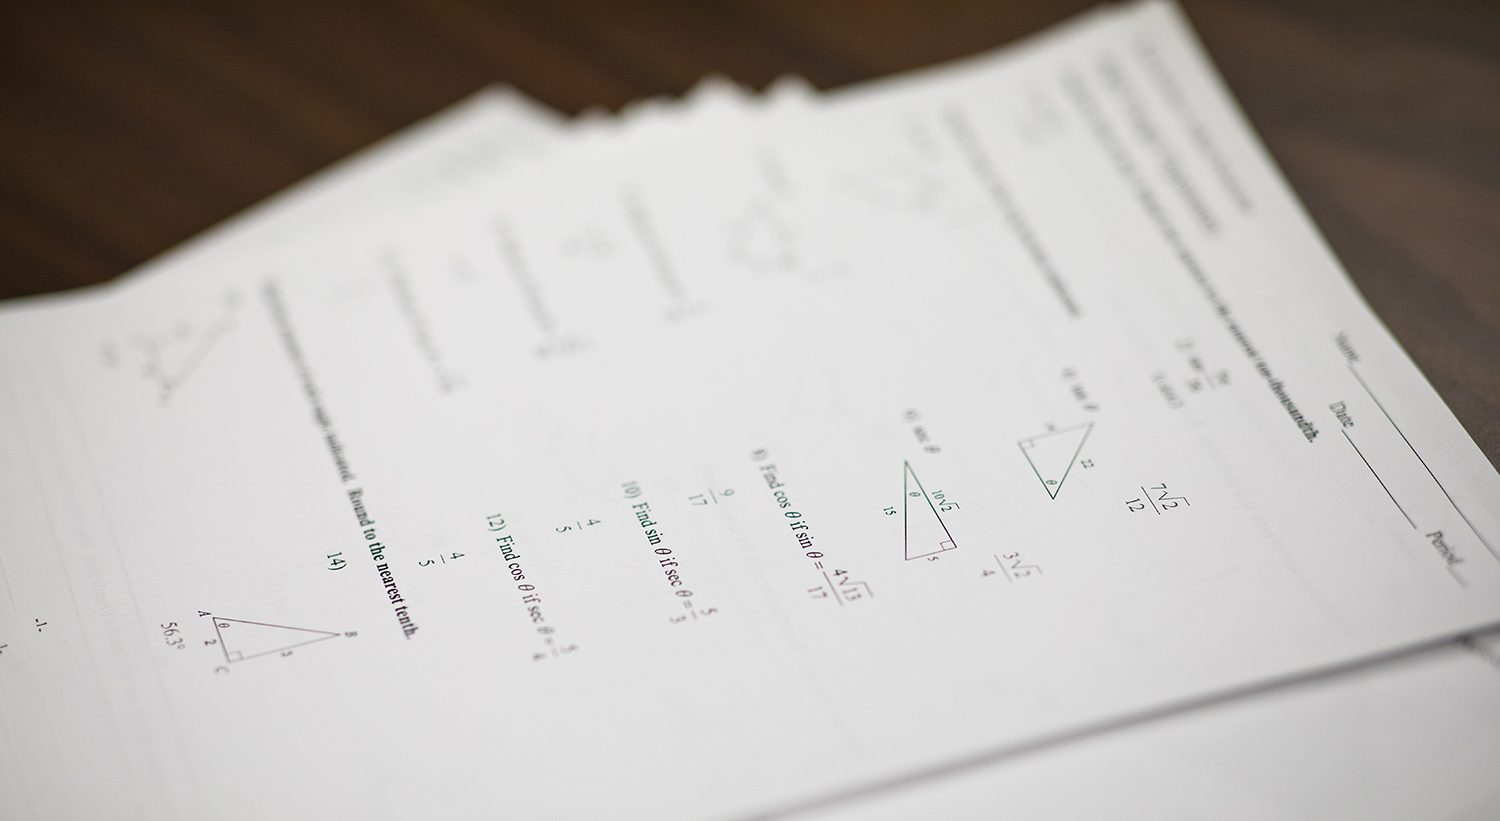 Math practice sheets on a table